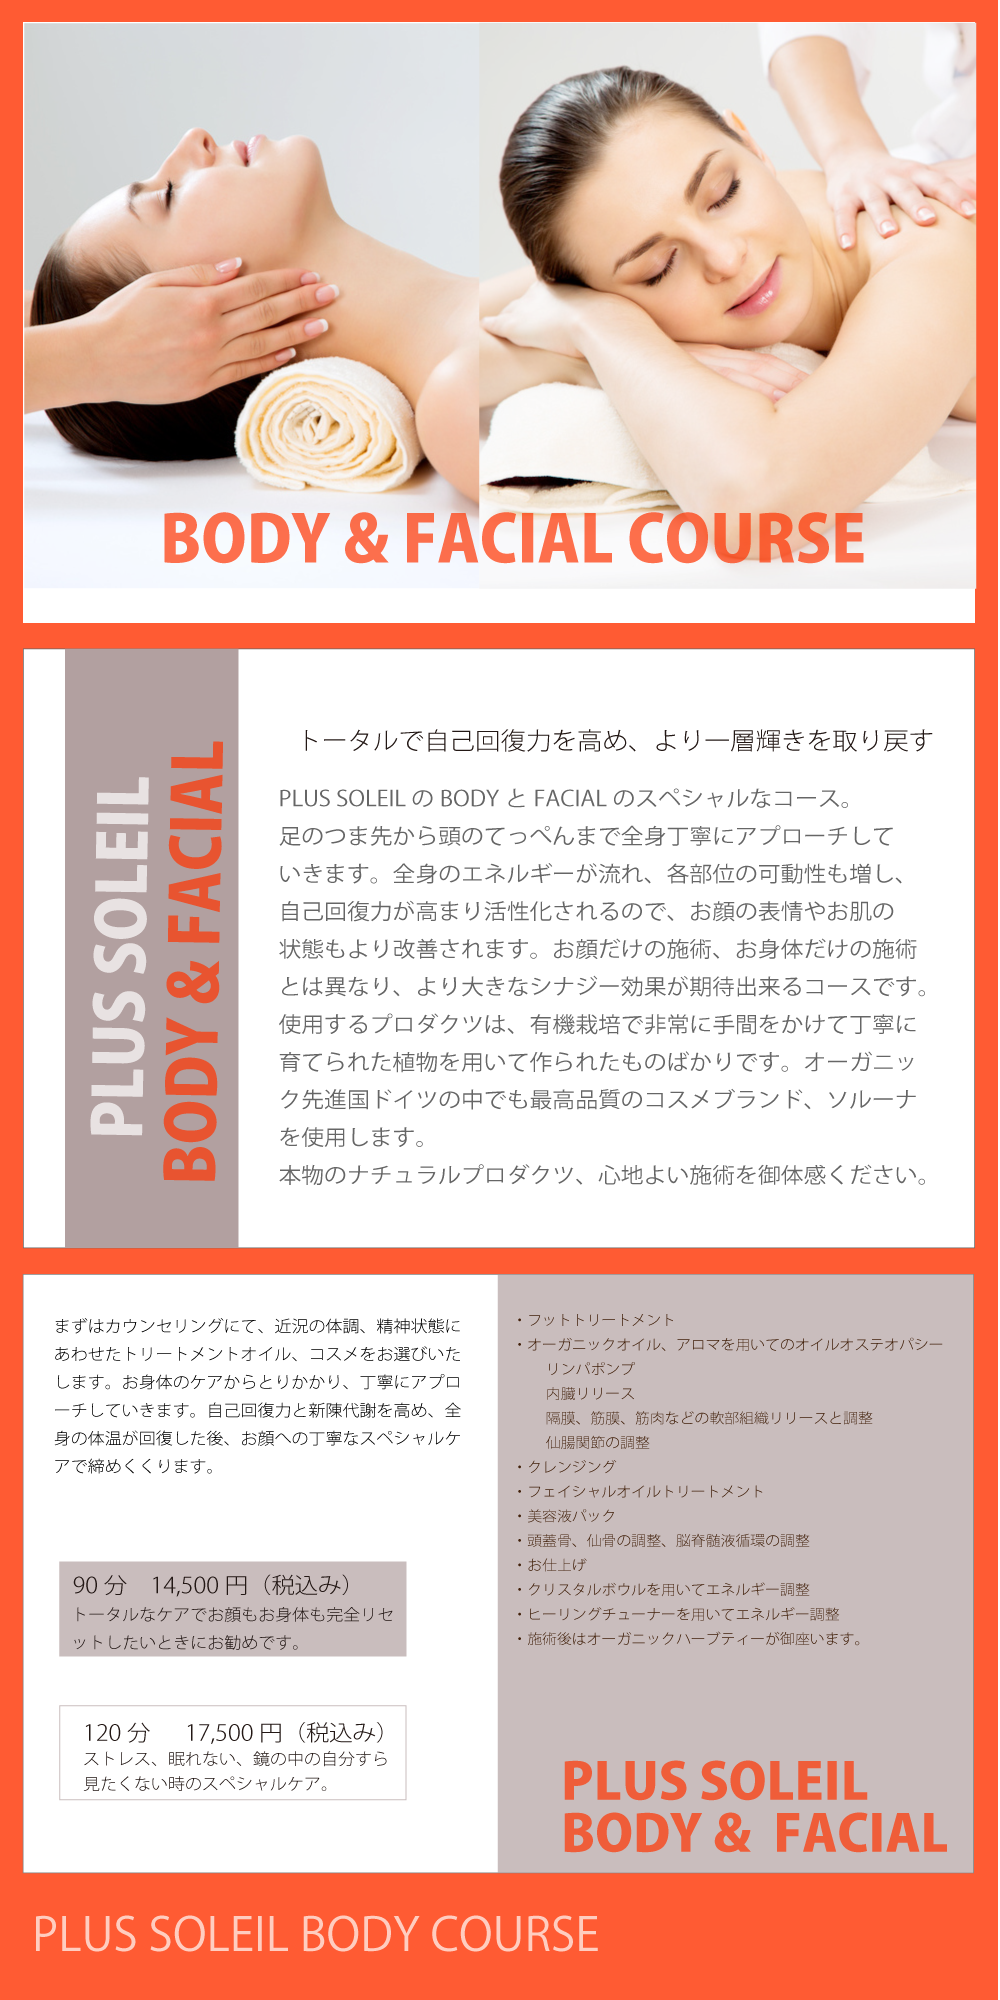 2019homepagebodyfacialcourse